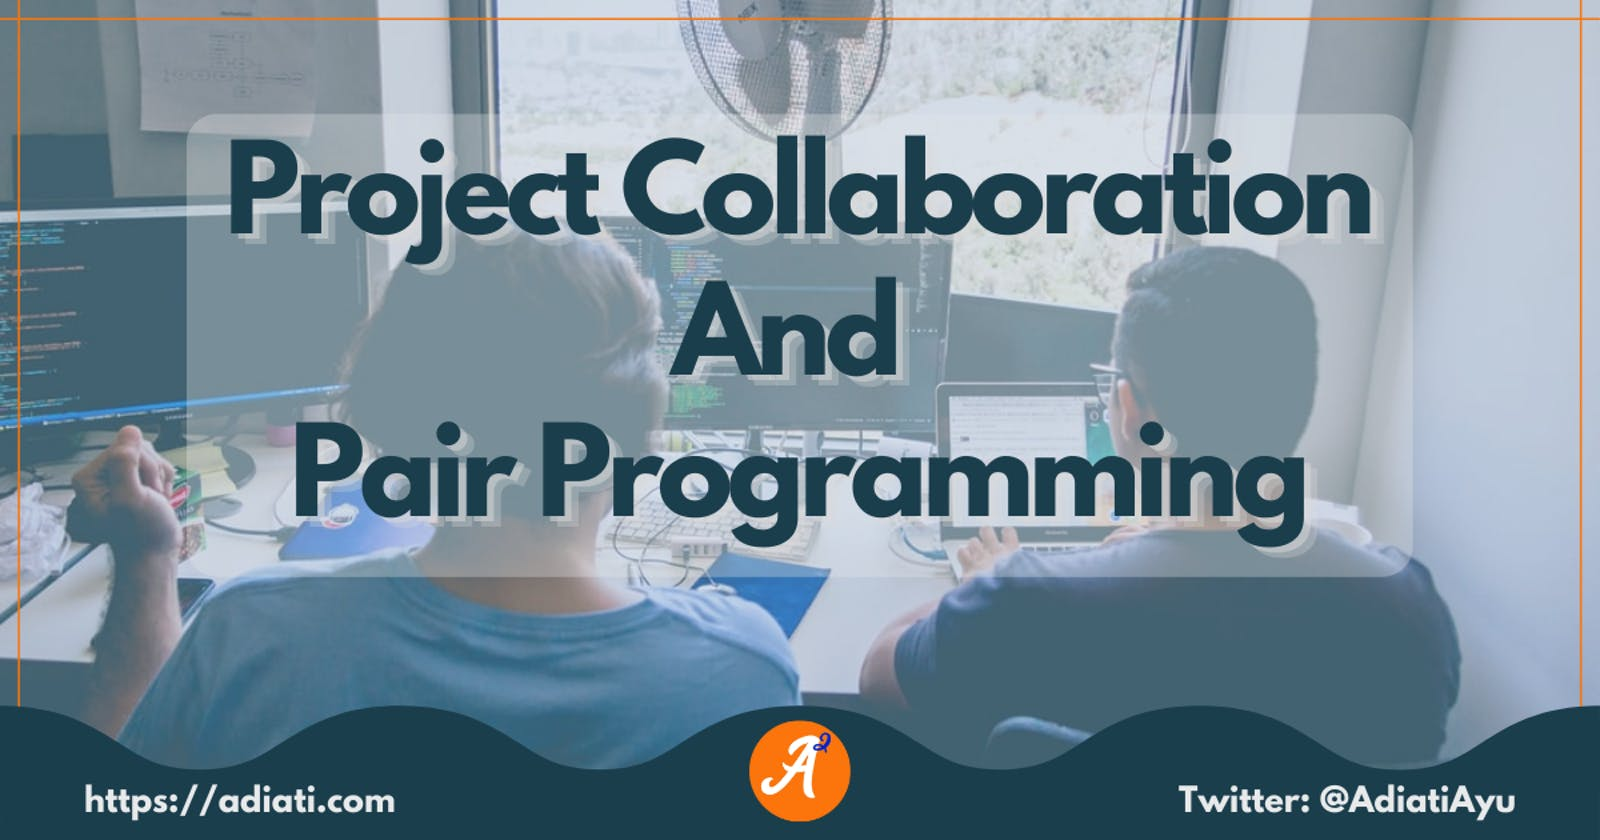 Project Collaboration And Pair Programming